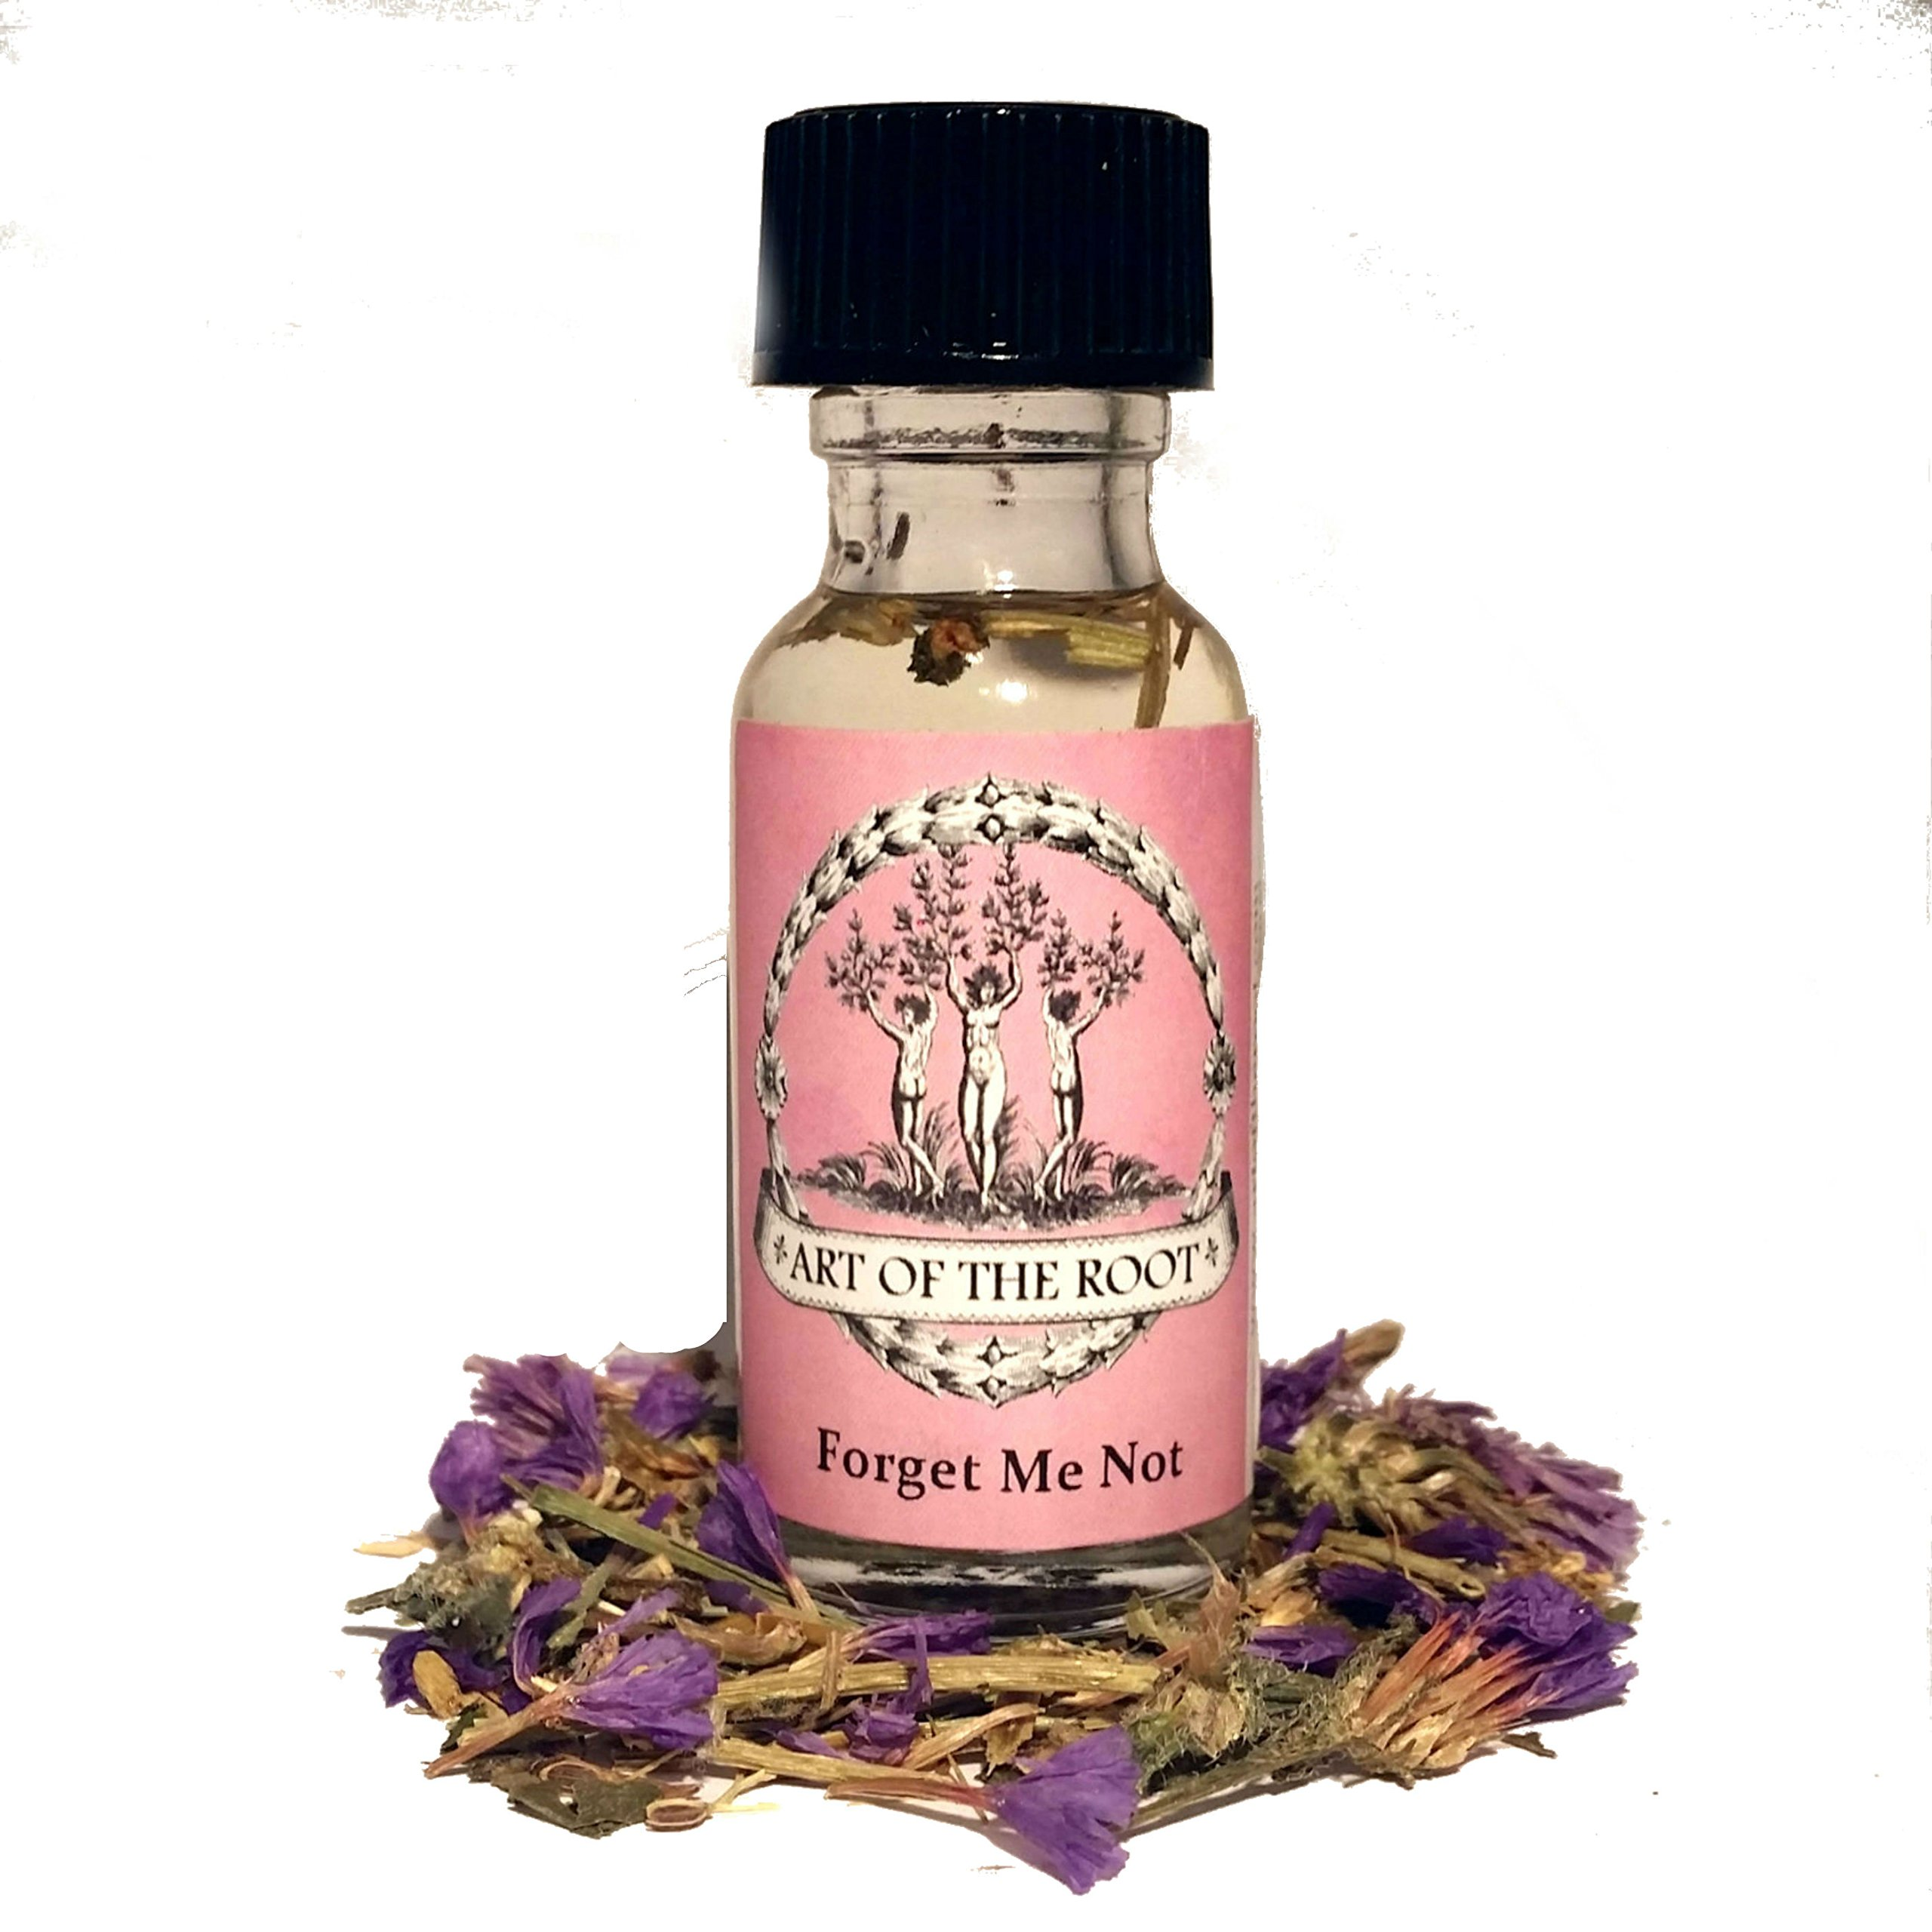 Forget Me Not Oil 1/2 oz for Enduring Love, Long Distance Relationships & Commitment Hoodoo Voodoo Wicca Pagan